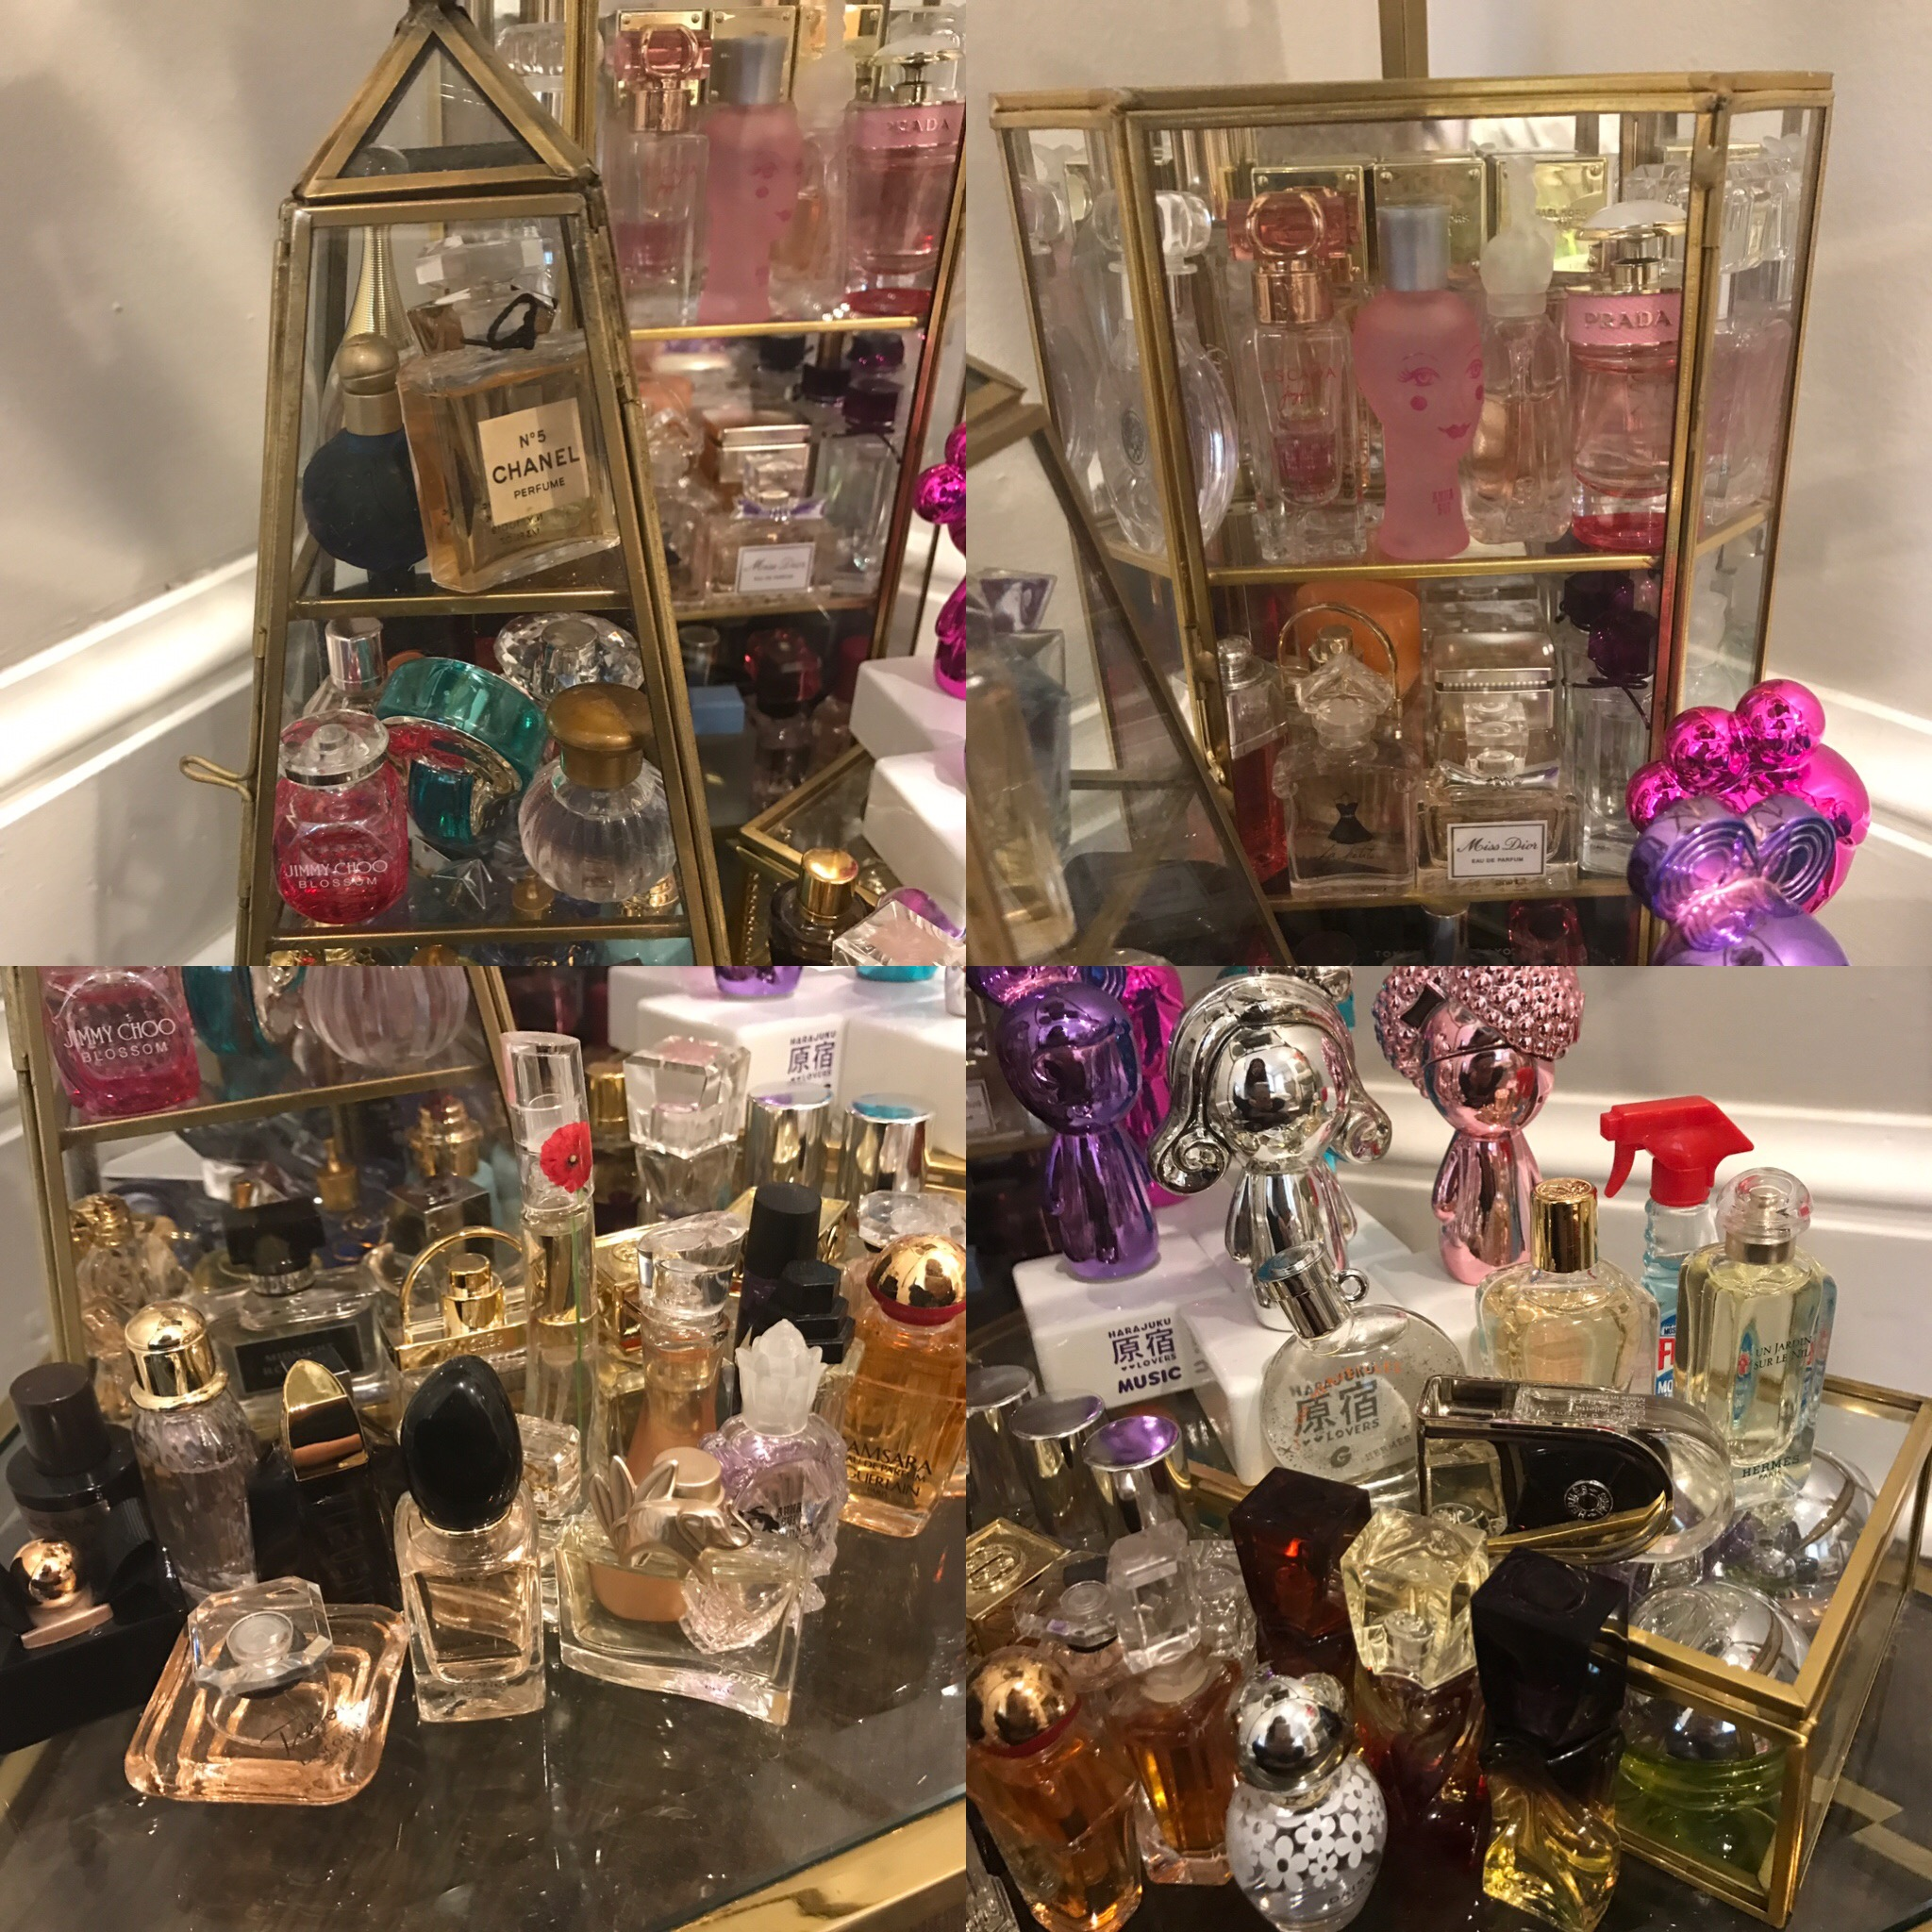 e92c9539964 Show Me Your Mini Perfume Collection! - Beauty Insider Community